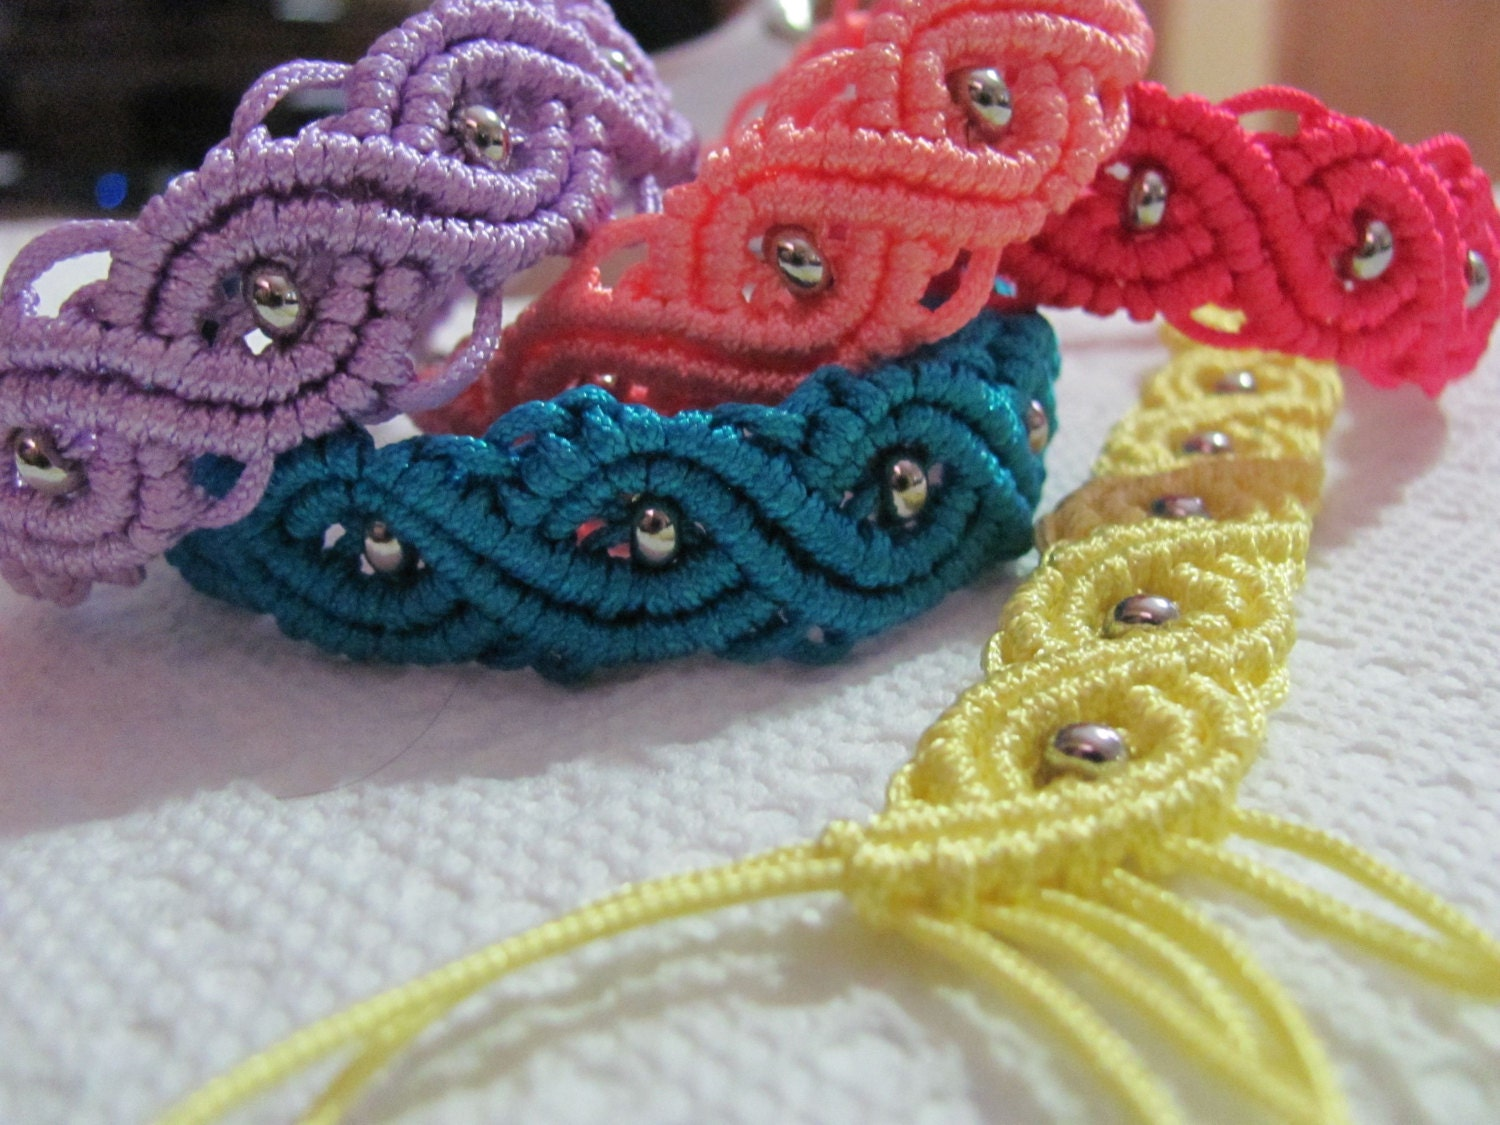 macrame jewelry patterns micro macrame eternal wave bracelet tutorial easy to follow 6335